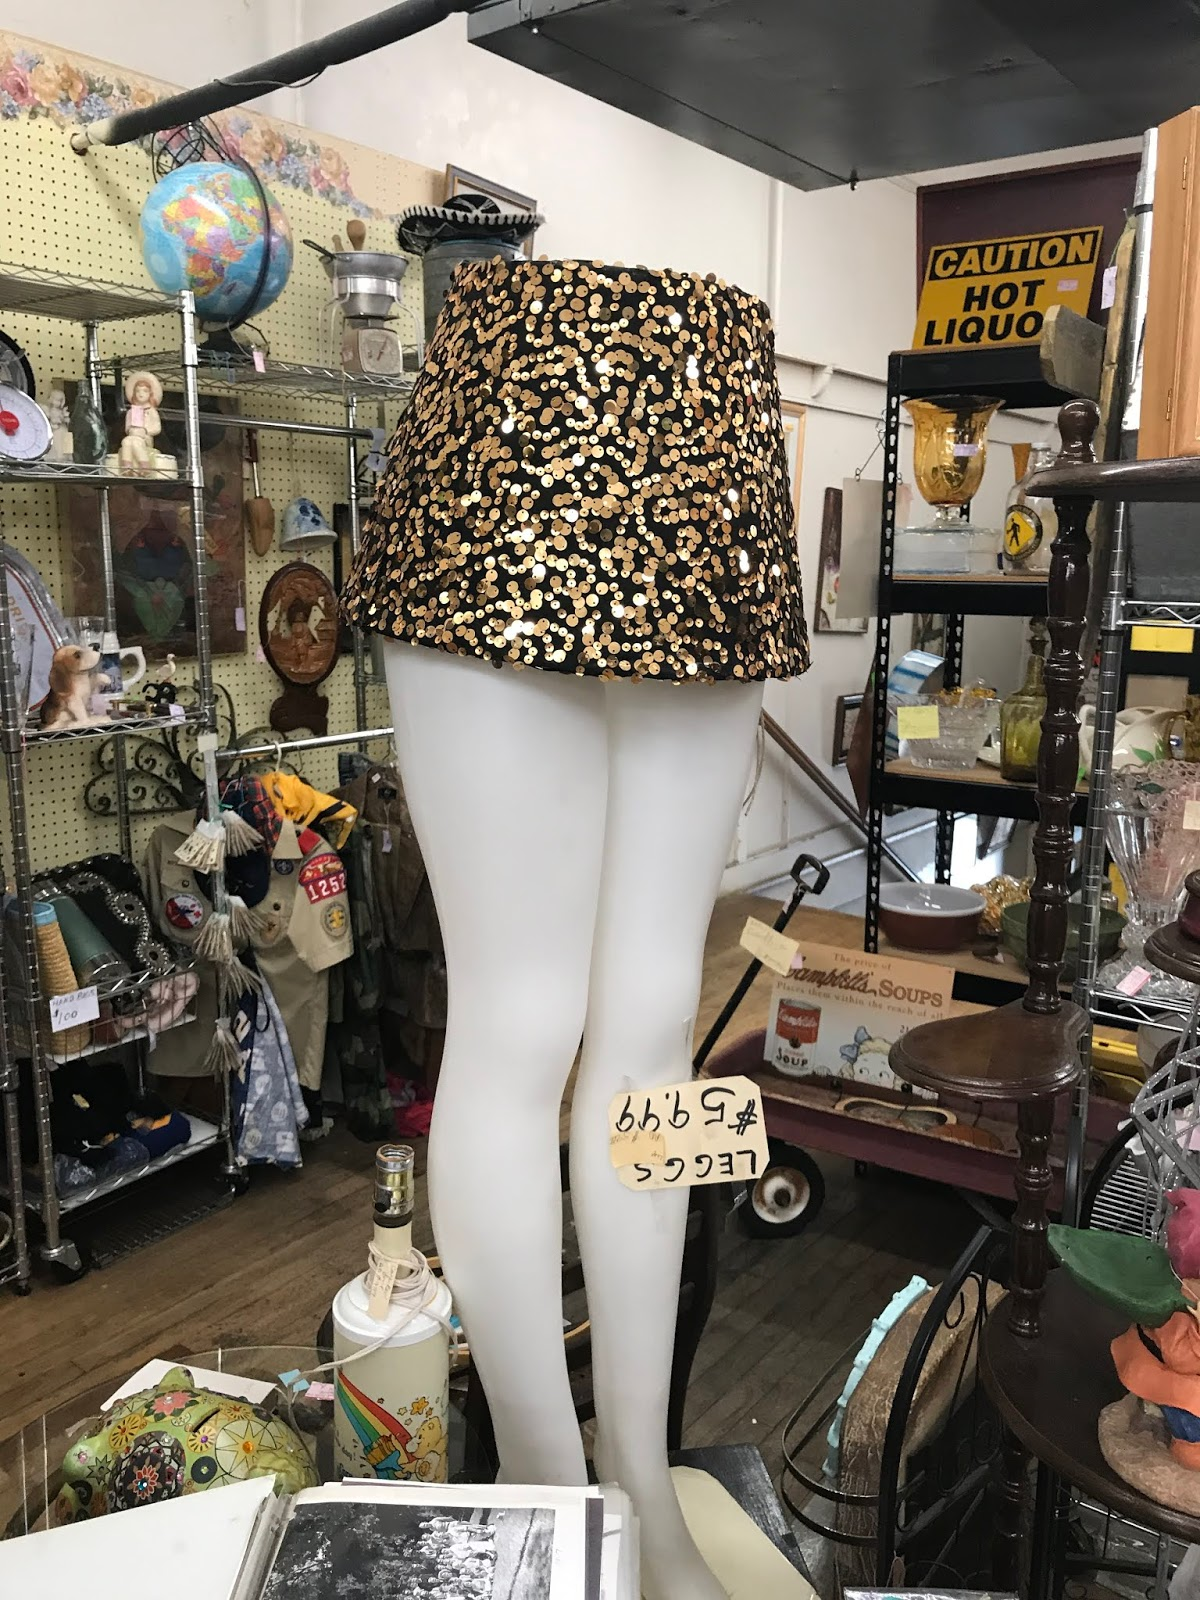 Image: Tall lamp legs at a thrift store in Dallas Texas:I am speaking about those simple living in the moments of aging. You know being happy about the process by letting go and really enjoying life. Finding a purpose and passion for the second half of living life.